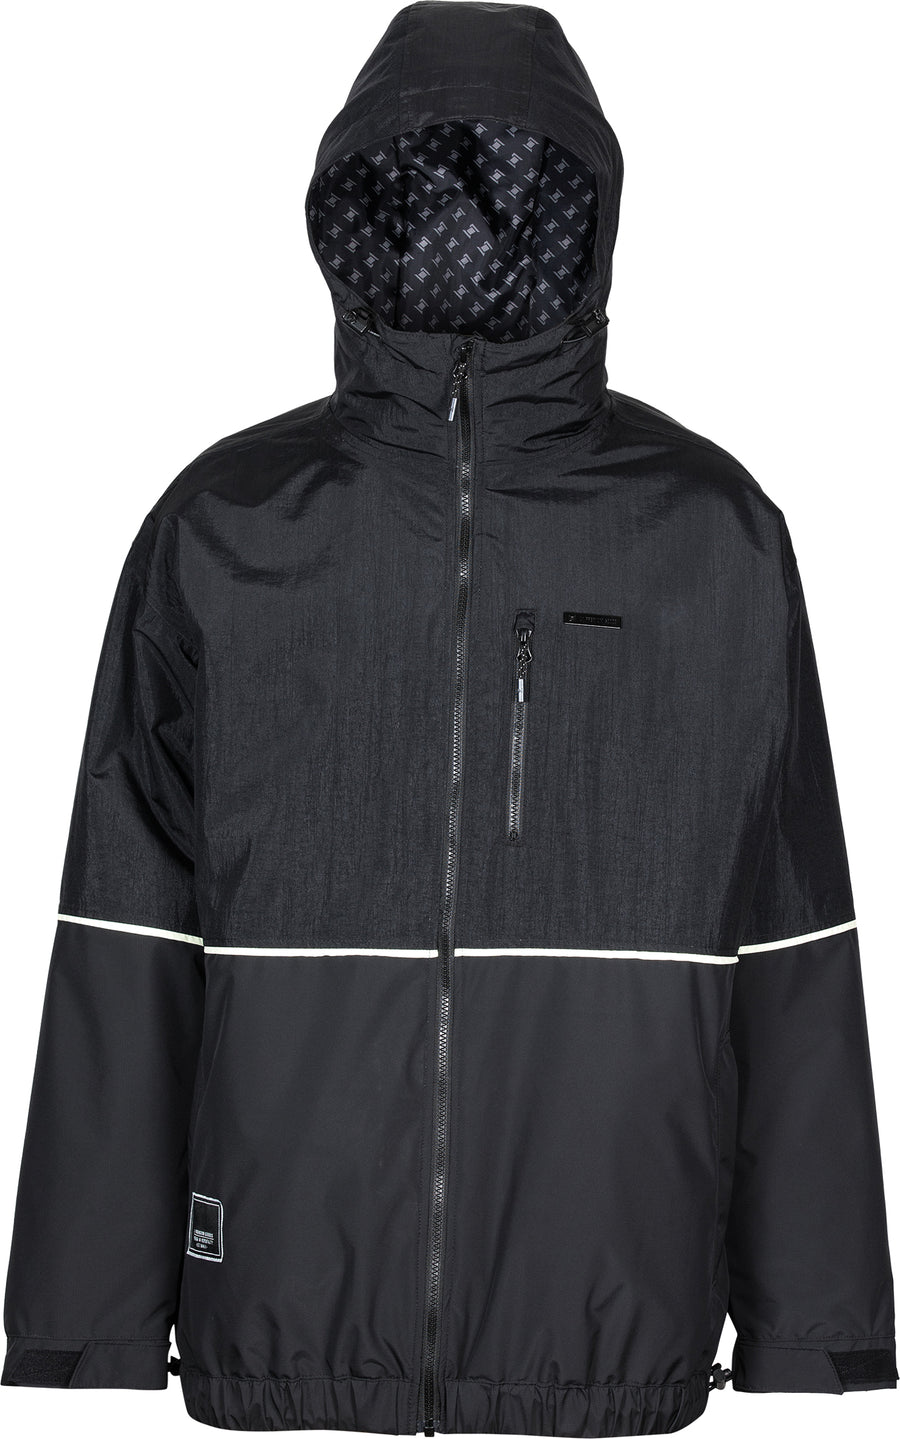 2021 L1 Ventura Snow  Jacket in Black and Soft Lime